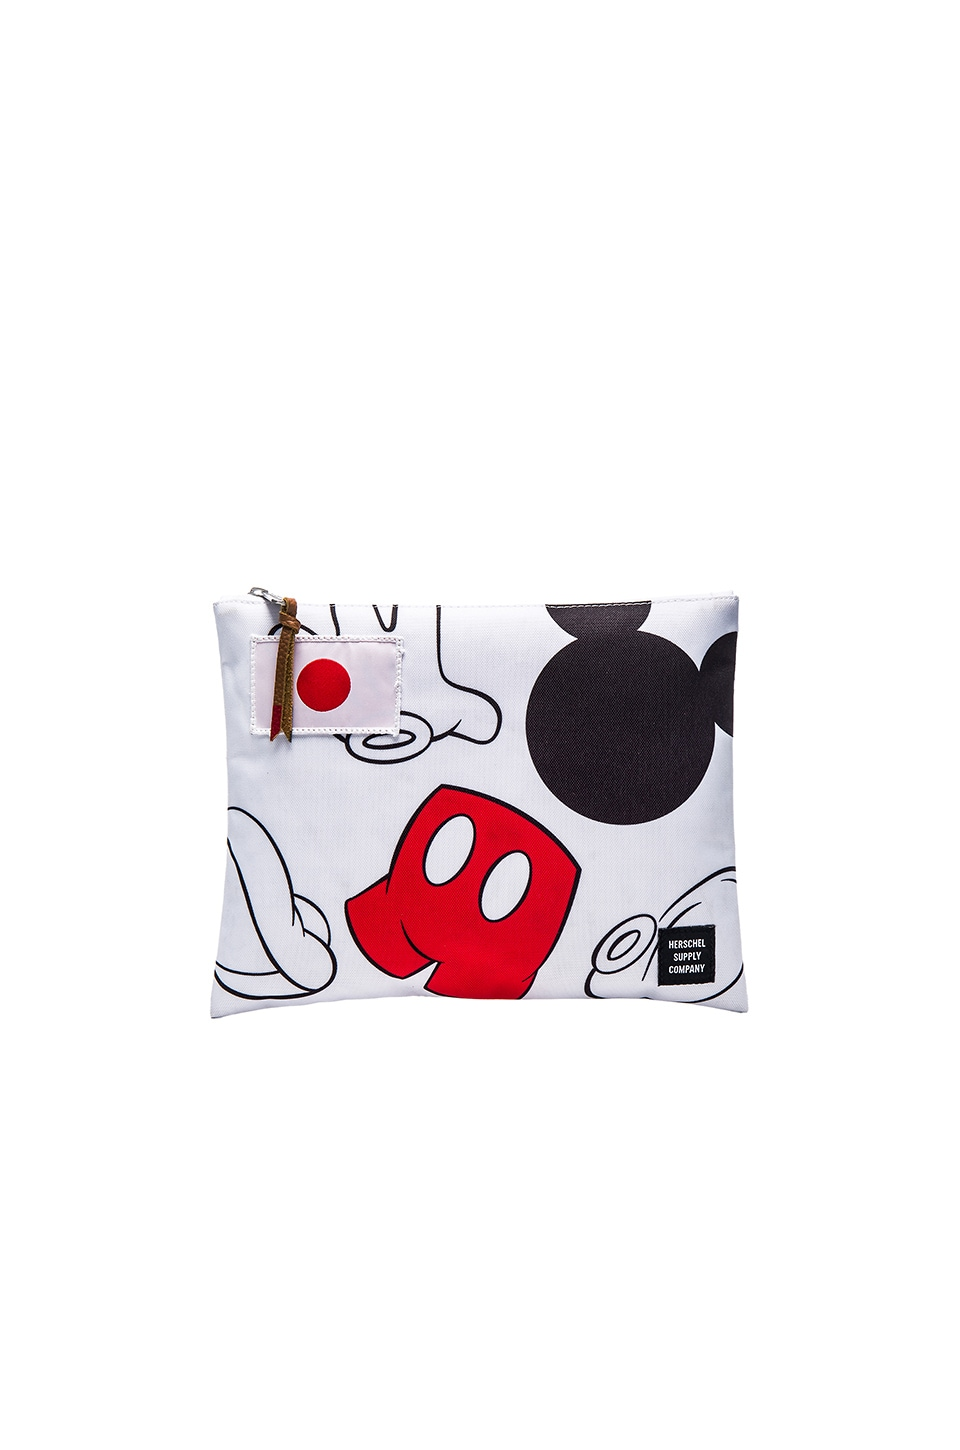 Herschel Supply Co. For Disney Large Network Pouch in White & Mickey